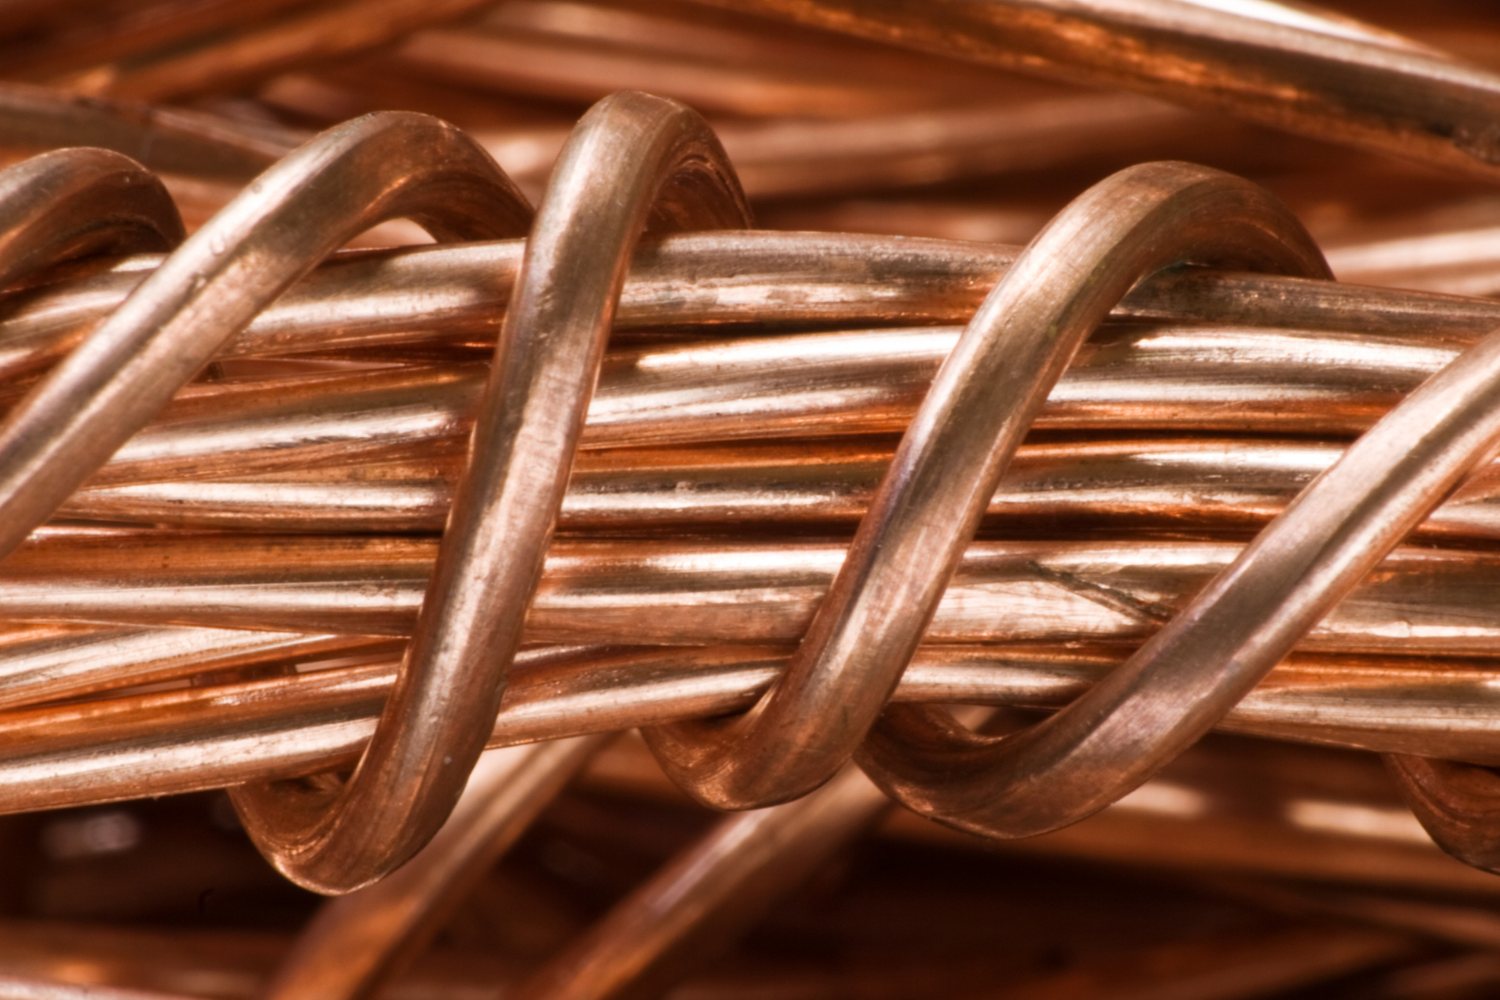 US copper buyers face world's highest prices as demand booms